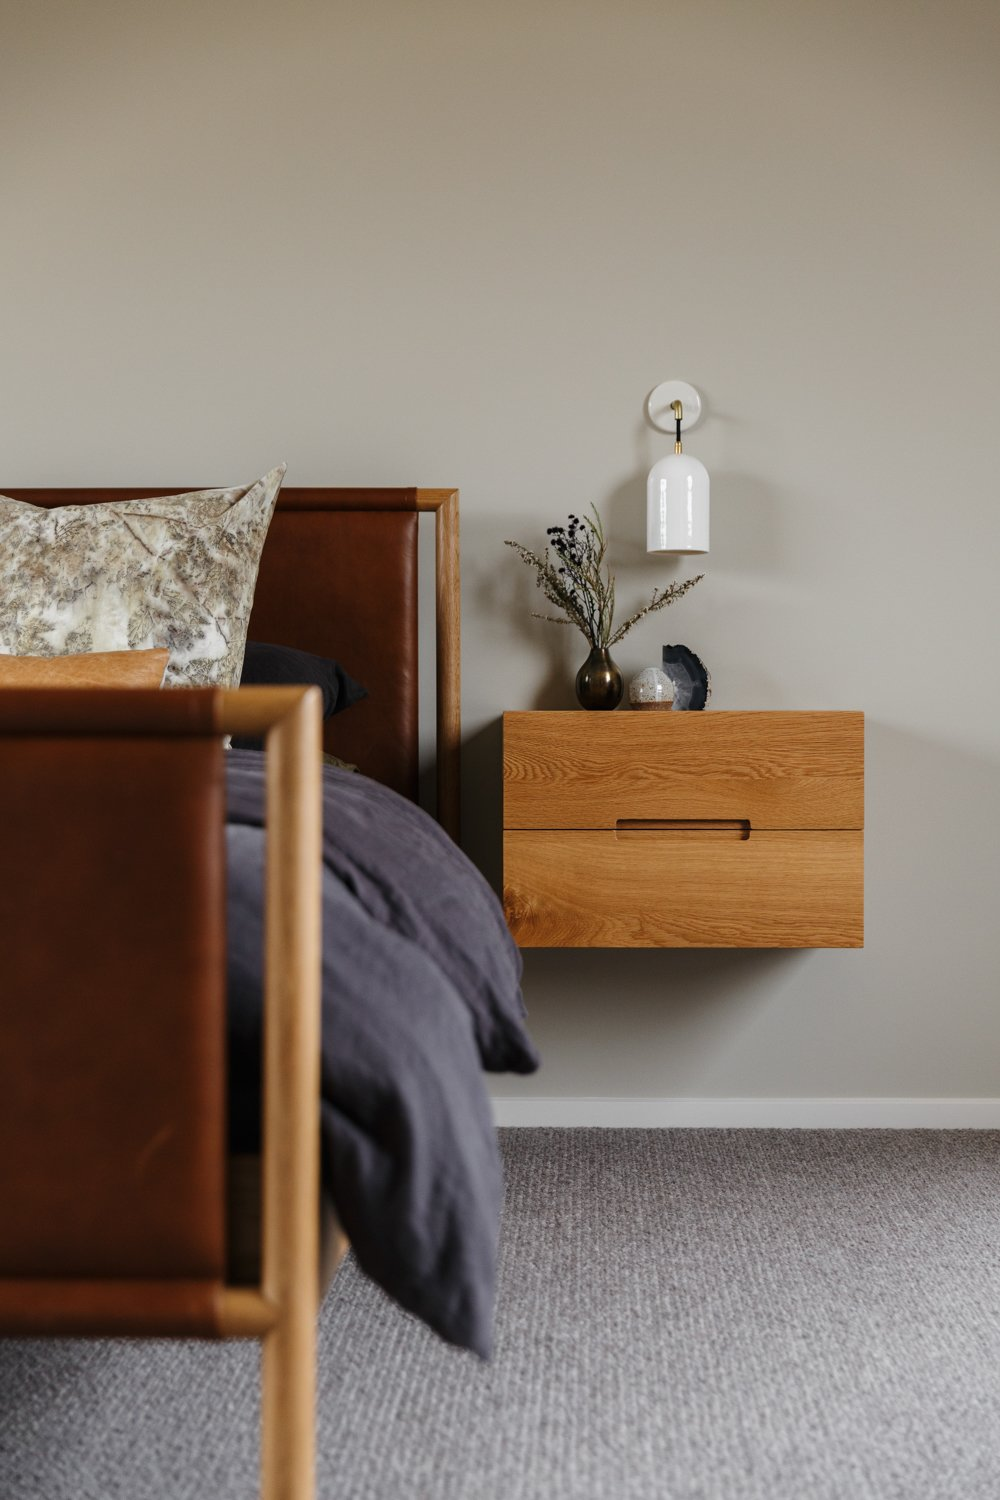 Bedroom, Bed, Night Stands, and Carpet Floor  Photos from The Surrounding Countryside Inspires a Family Home in Australia's Adelaide Hills